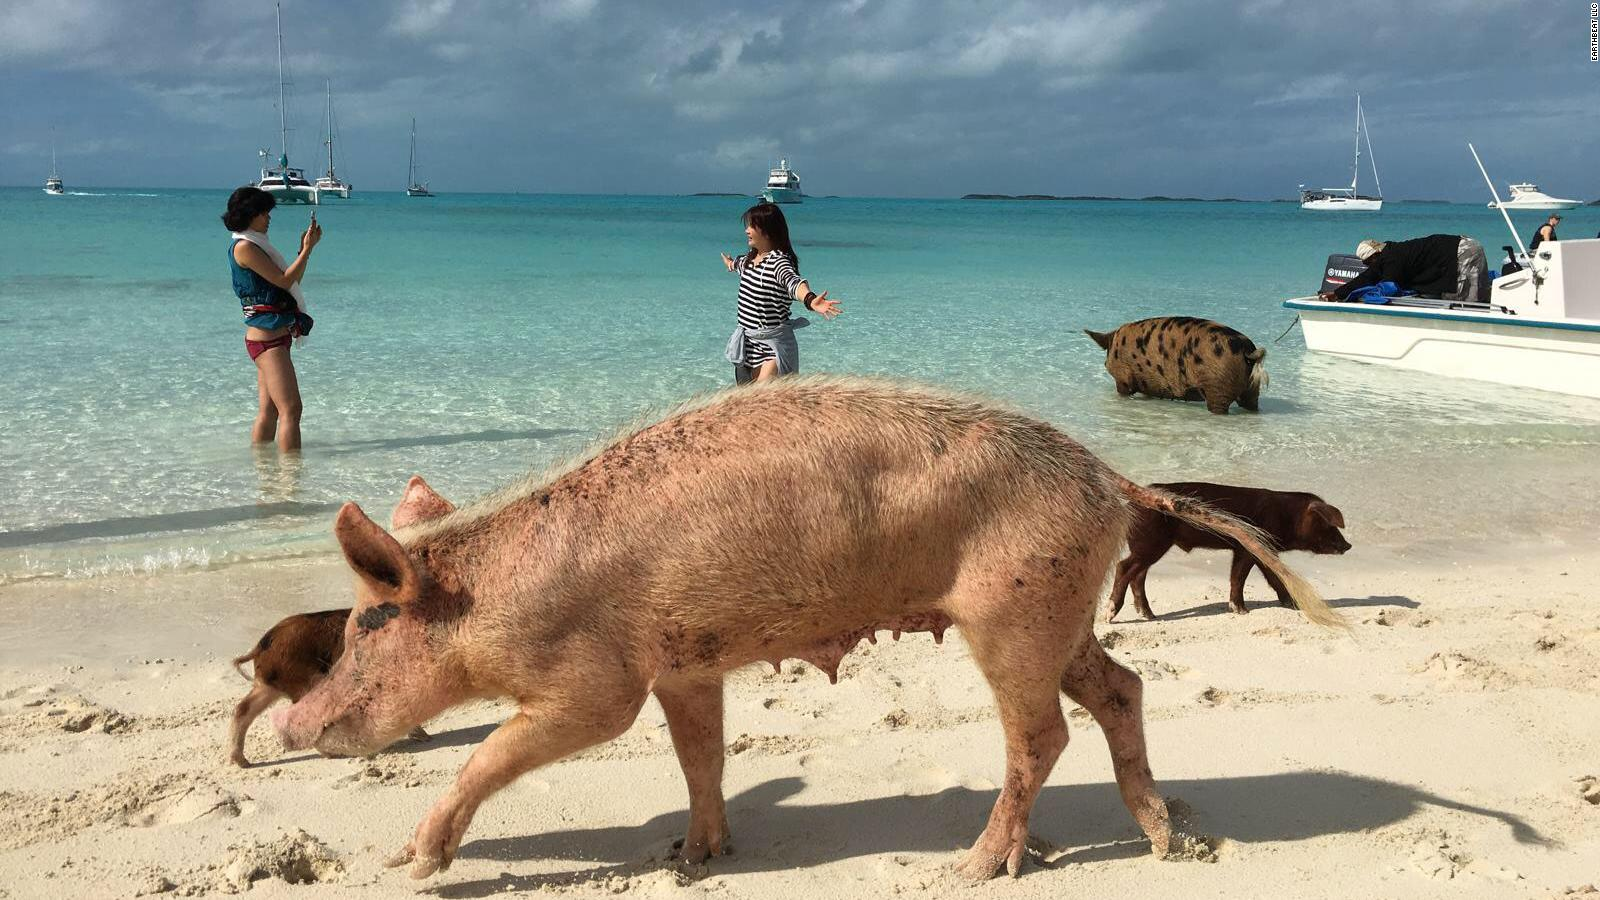 Bahamas' swimming pigs head to boats in hopes of food | CNN